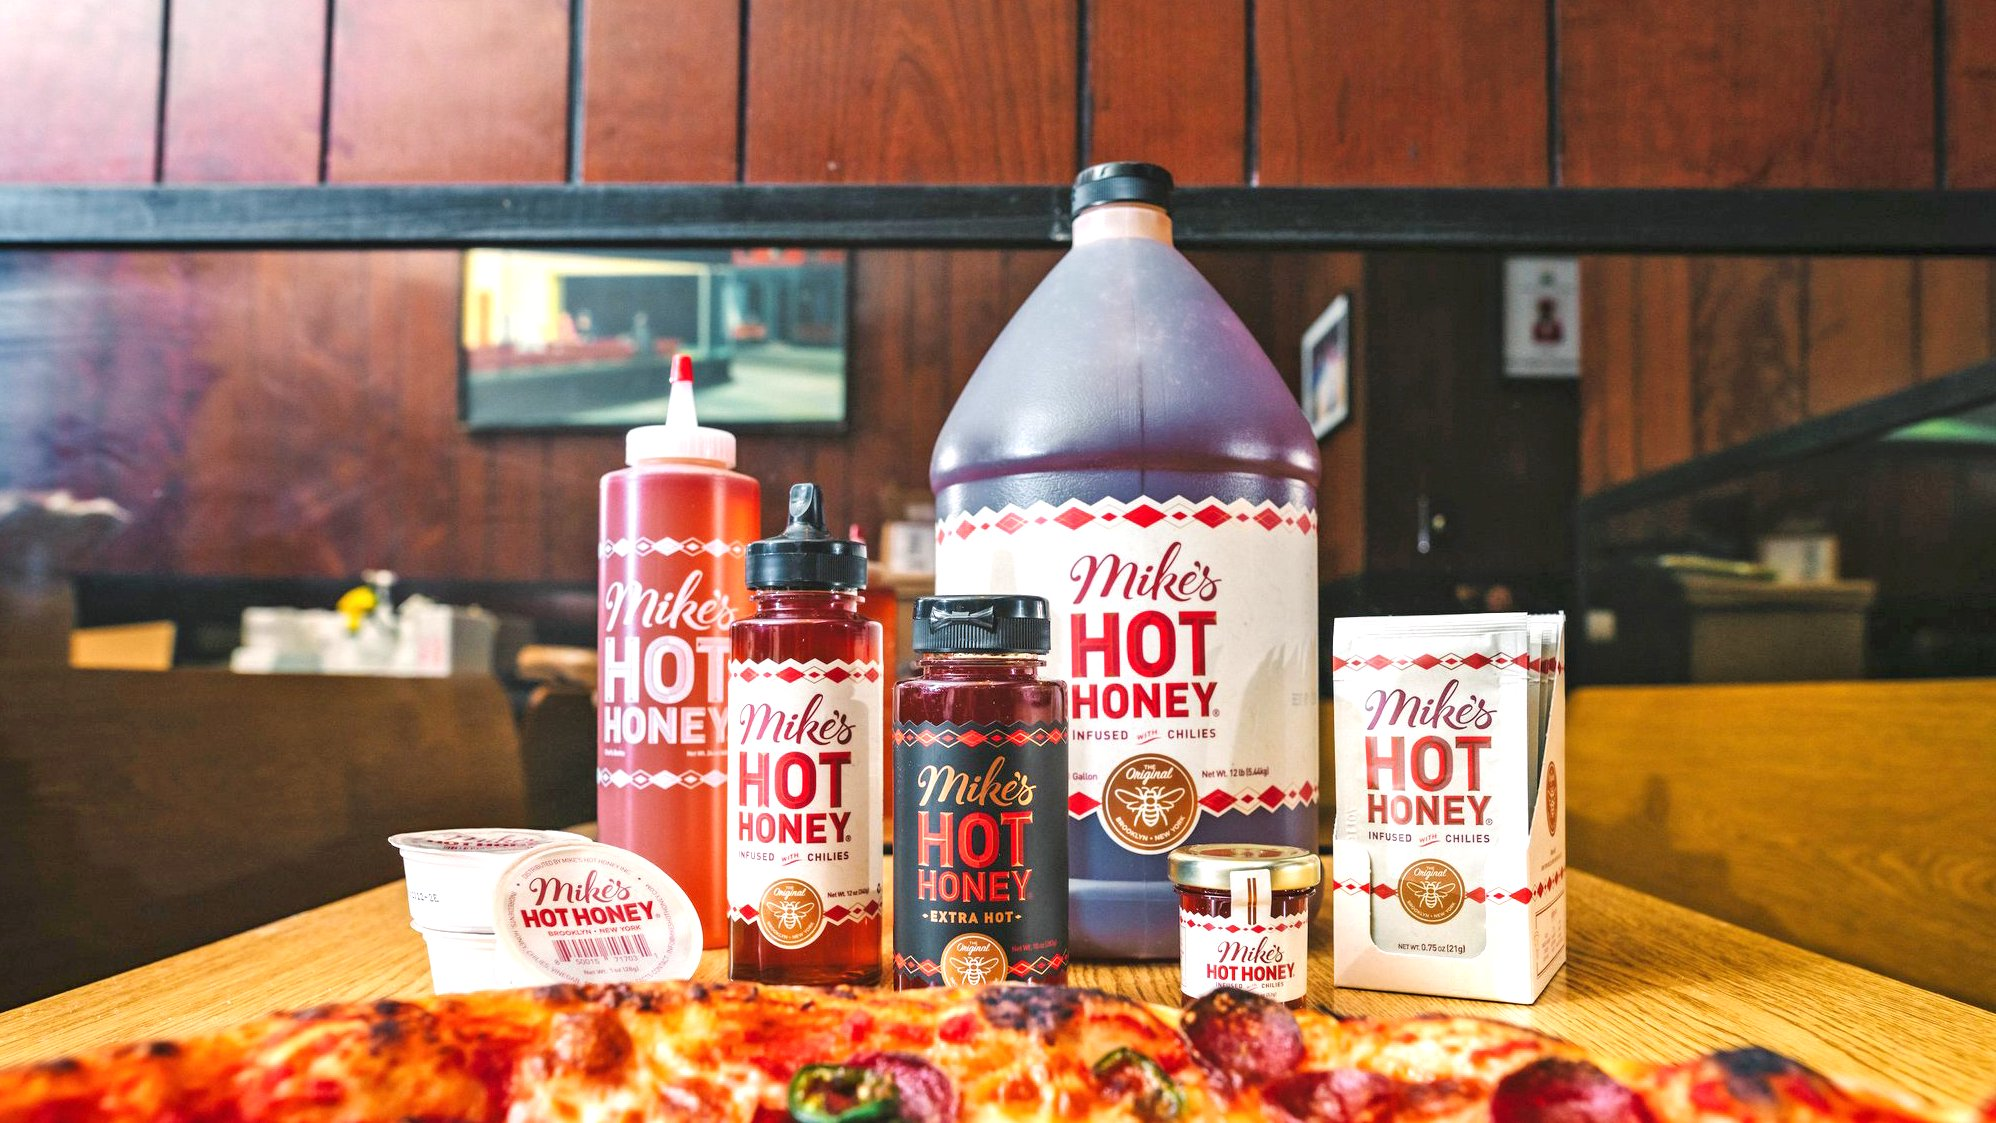 Mikes Hot Honey cover image